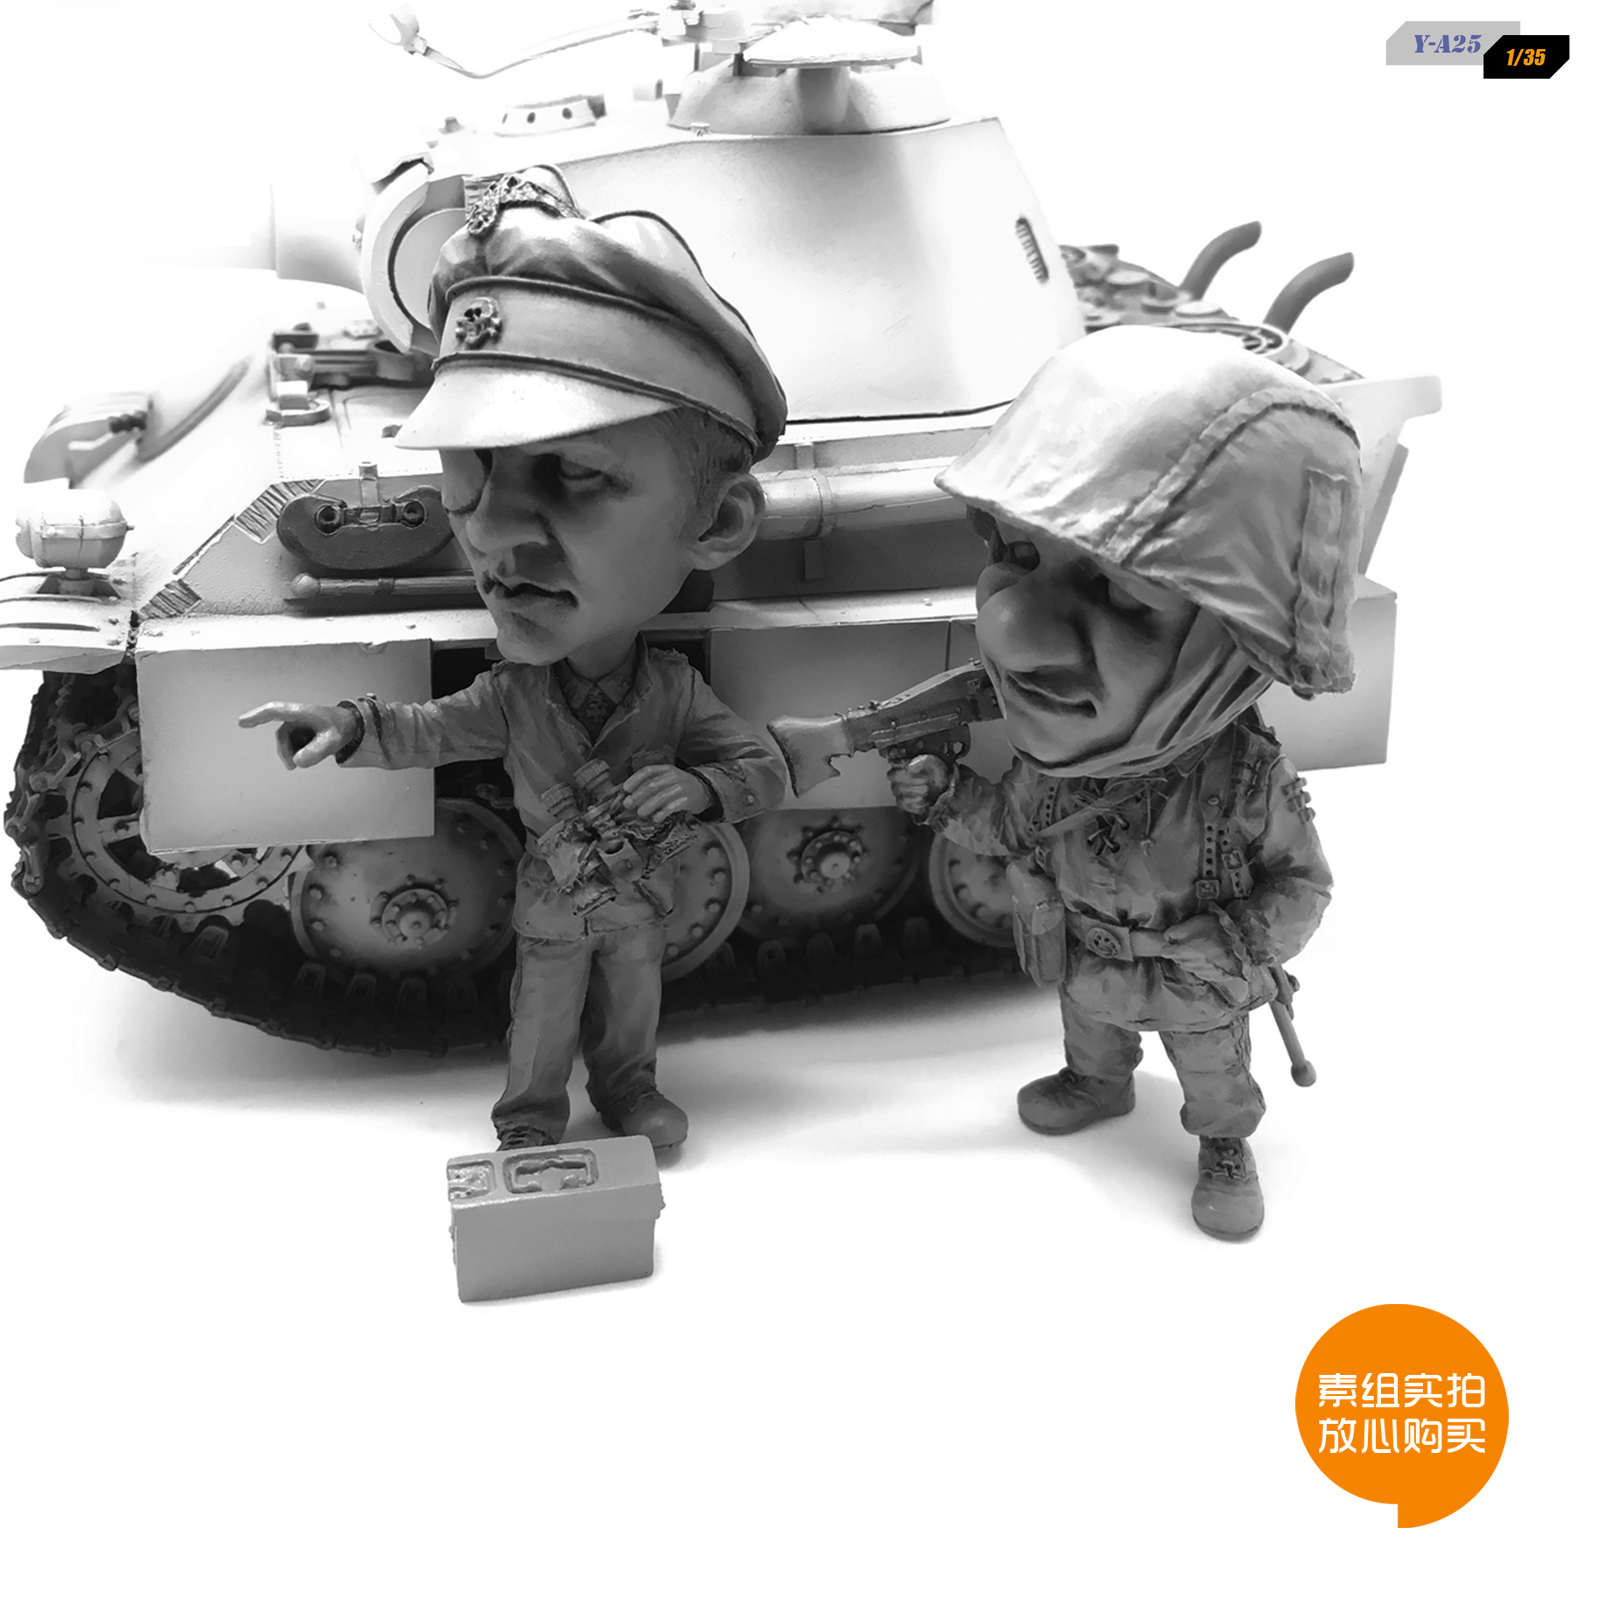 Q  Resin Kits Edition Resin Assembled Tank Plus Q Version Of The Soldier Suit Self-assembled  Y-A25